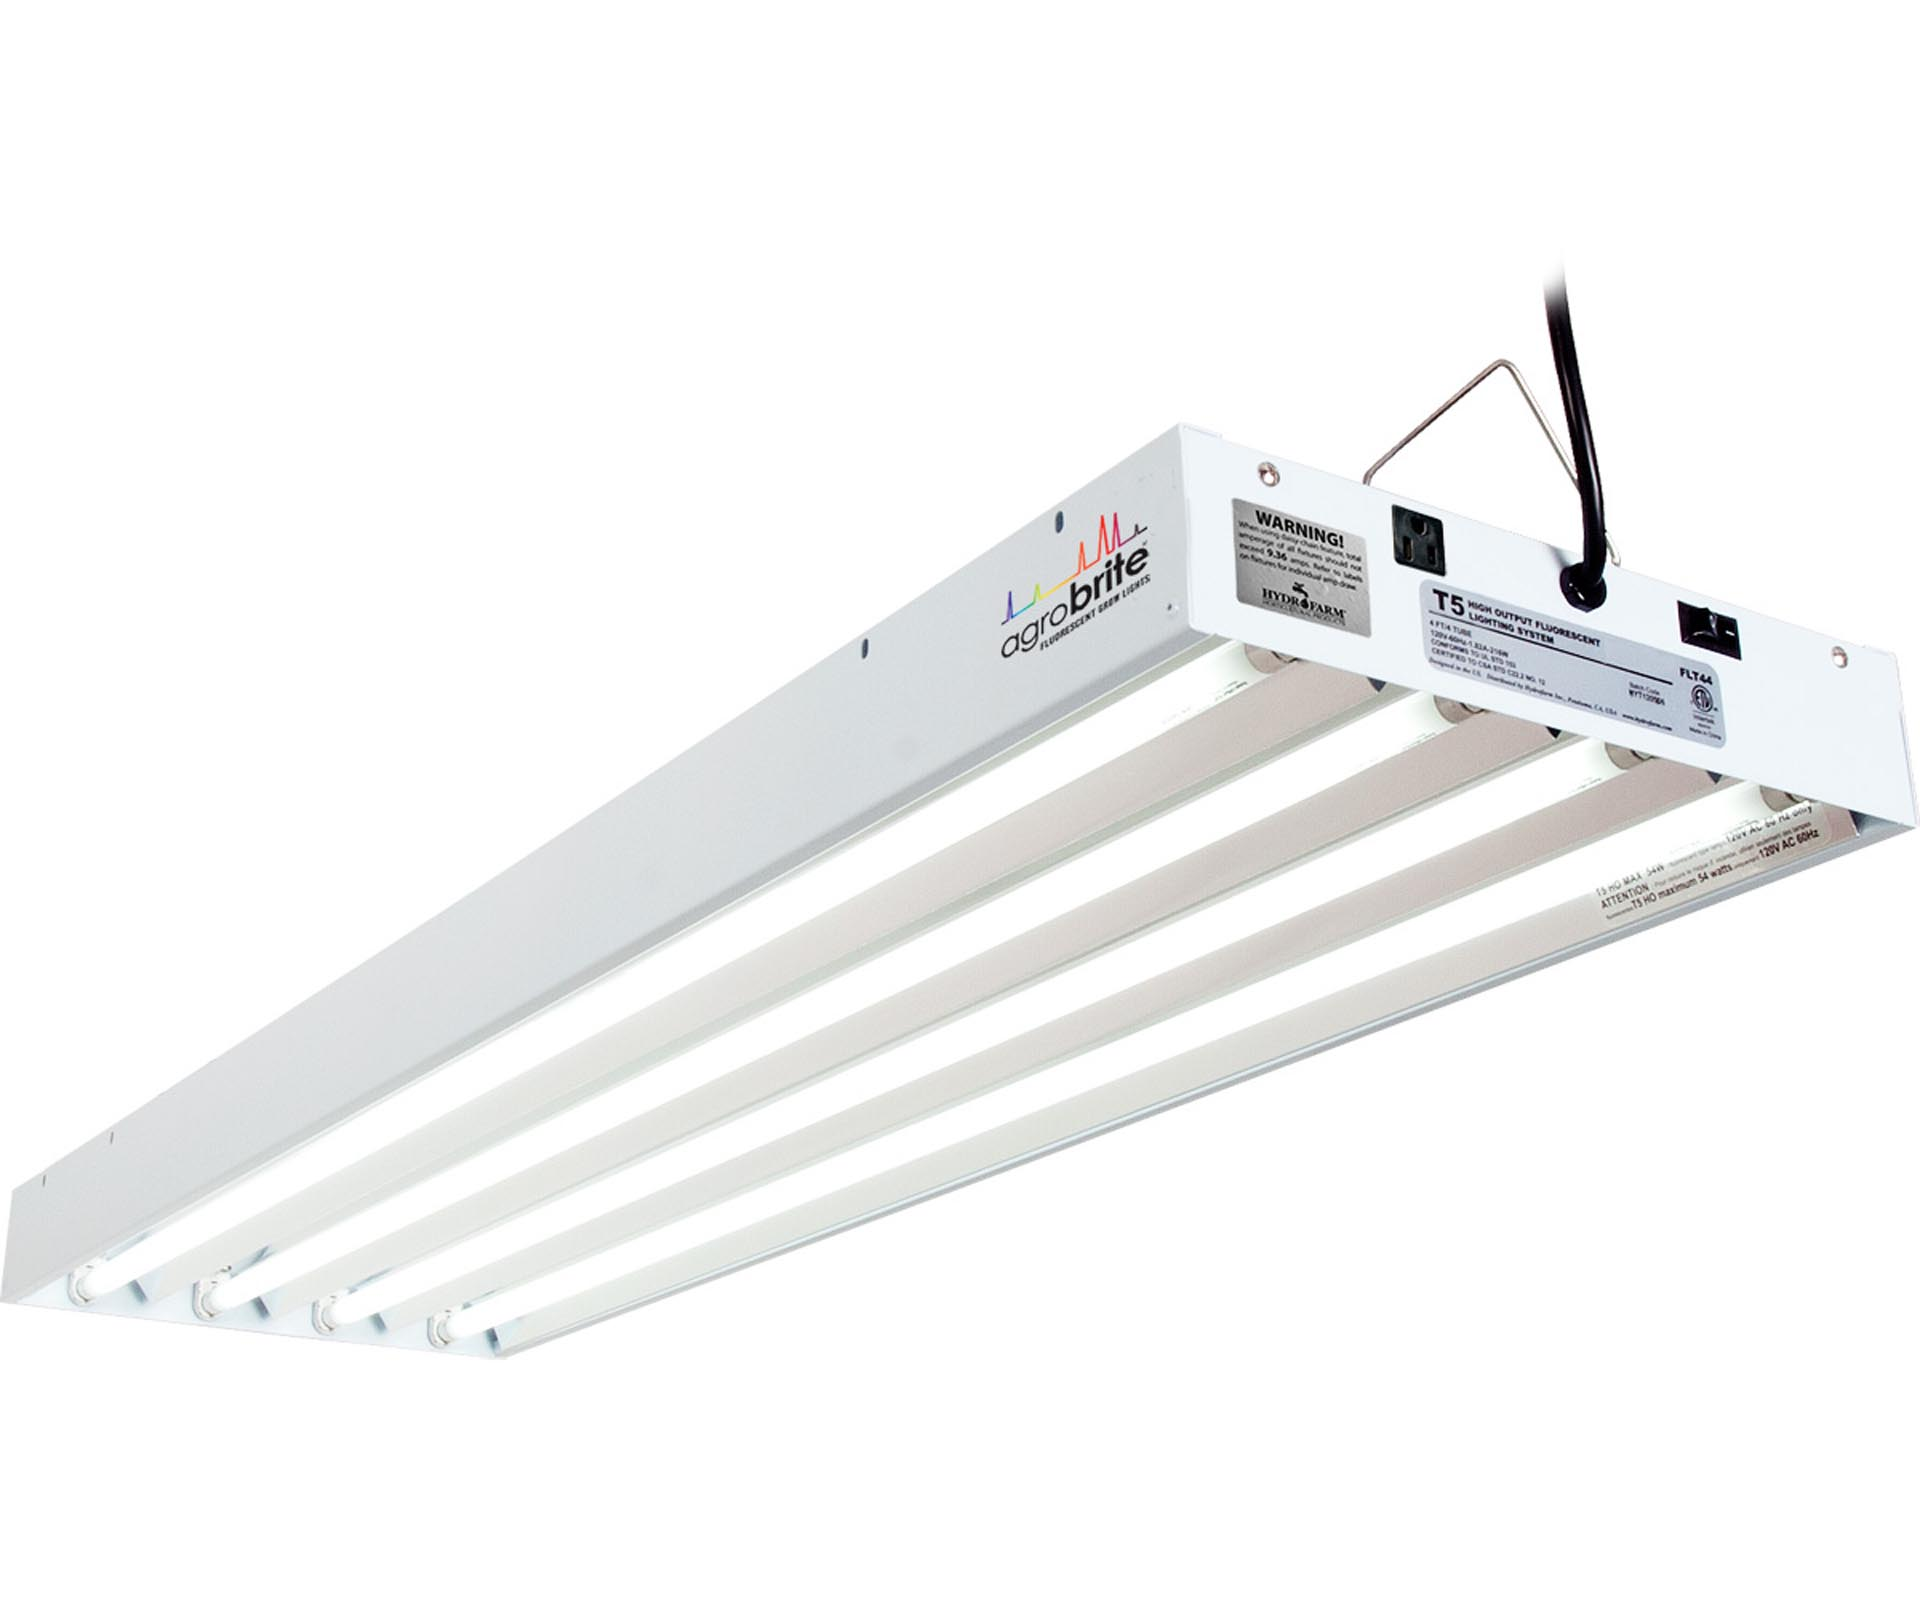 Agrobrite T5 216W 4u0027 4 Tube Grow Light Fixture W/ Fluorescent Lamps |